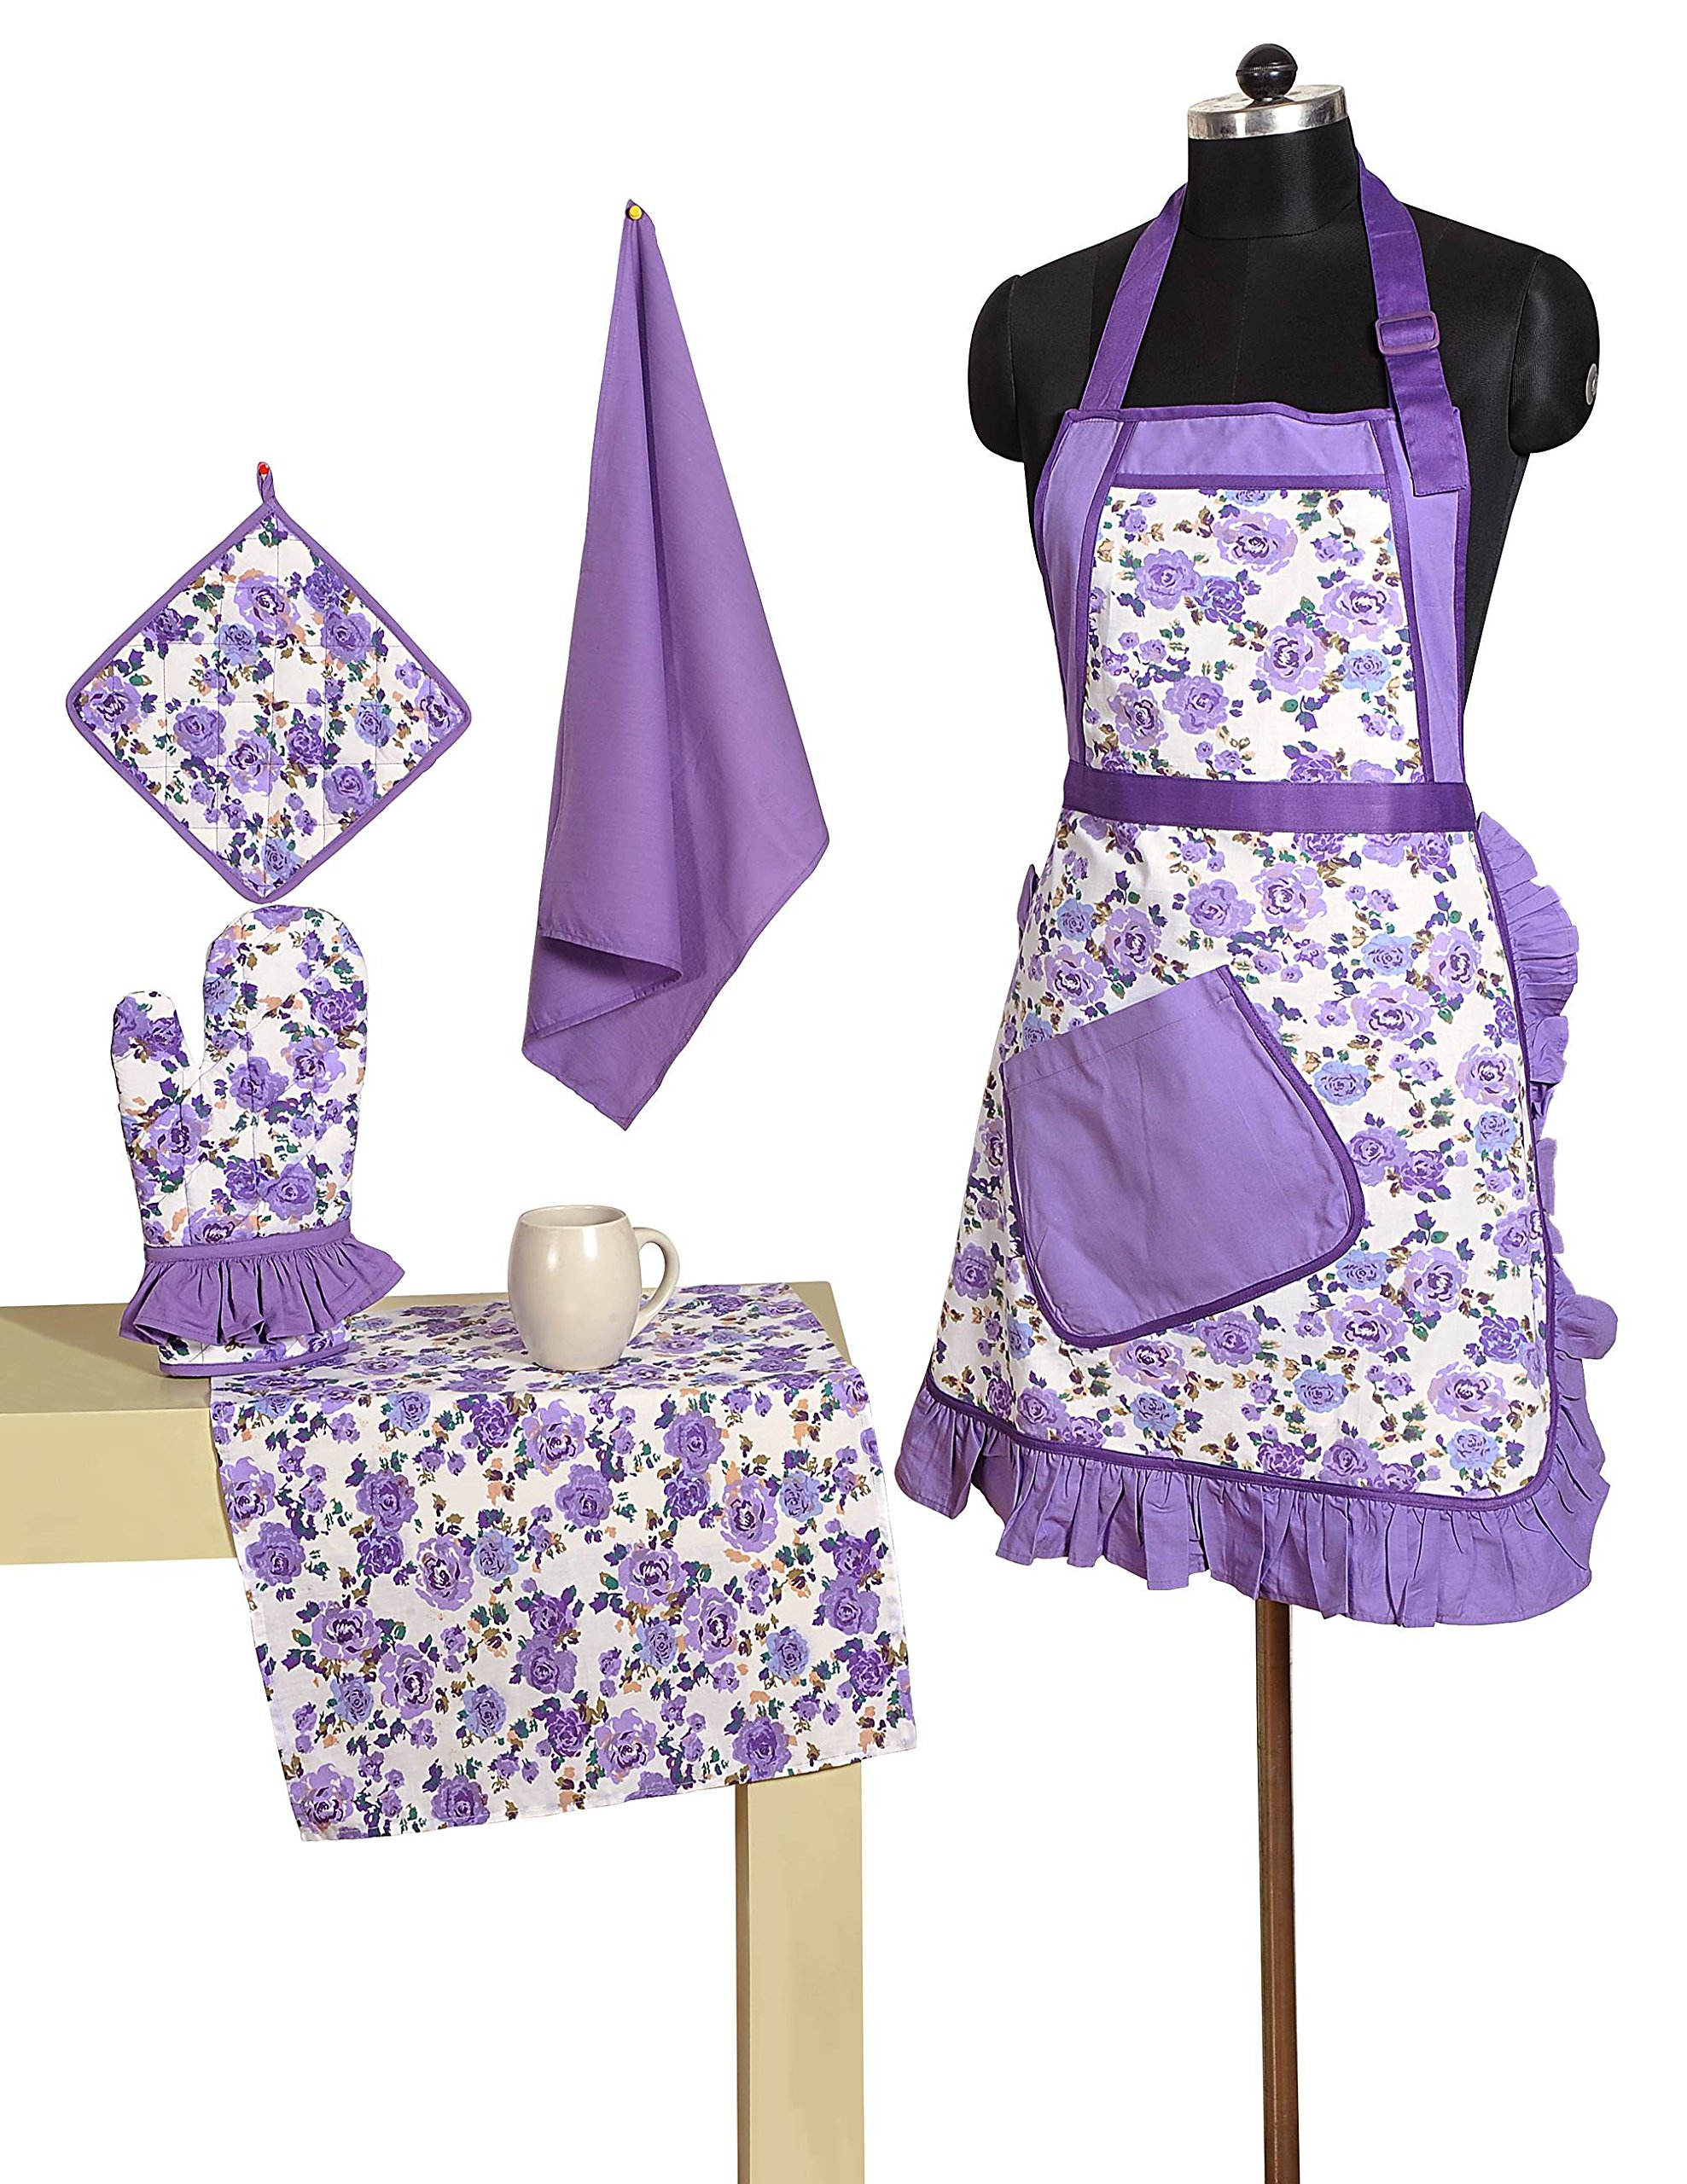 Patterned Belted Cotton Chef's Apron Set with Pot Holder, Oven Mitts & Napkins - Perfect Home Kitchen Gift or Bridal Shower Gift by Swayam